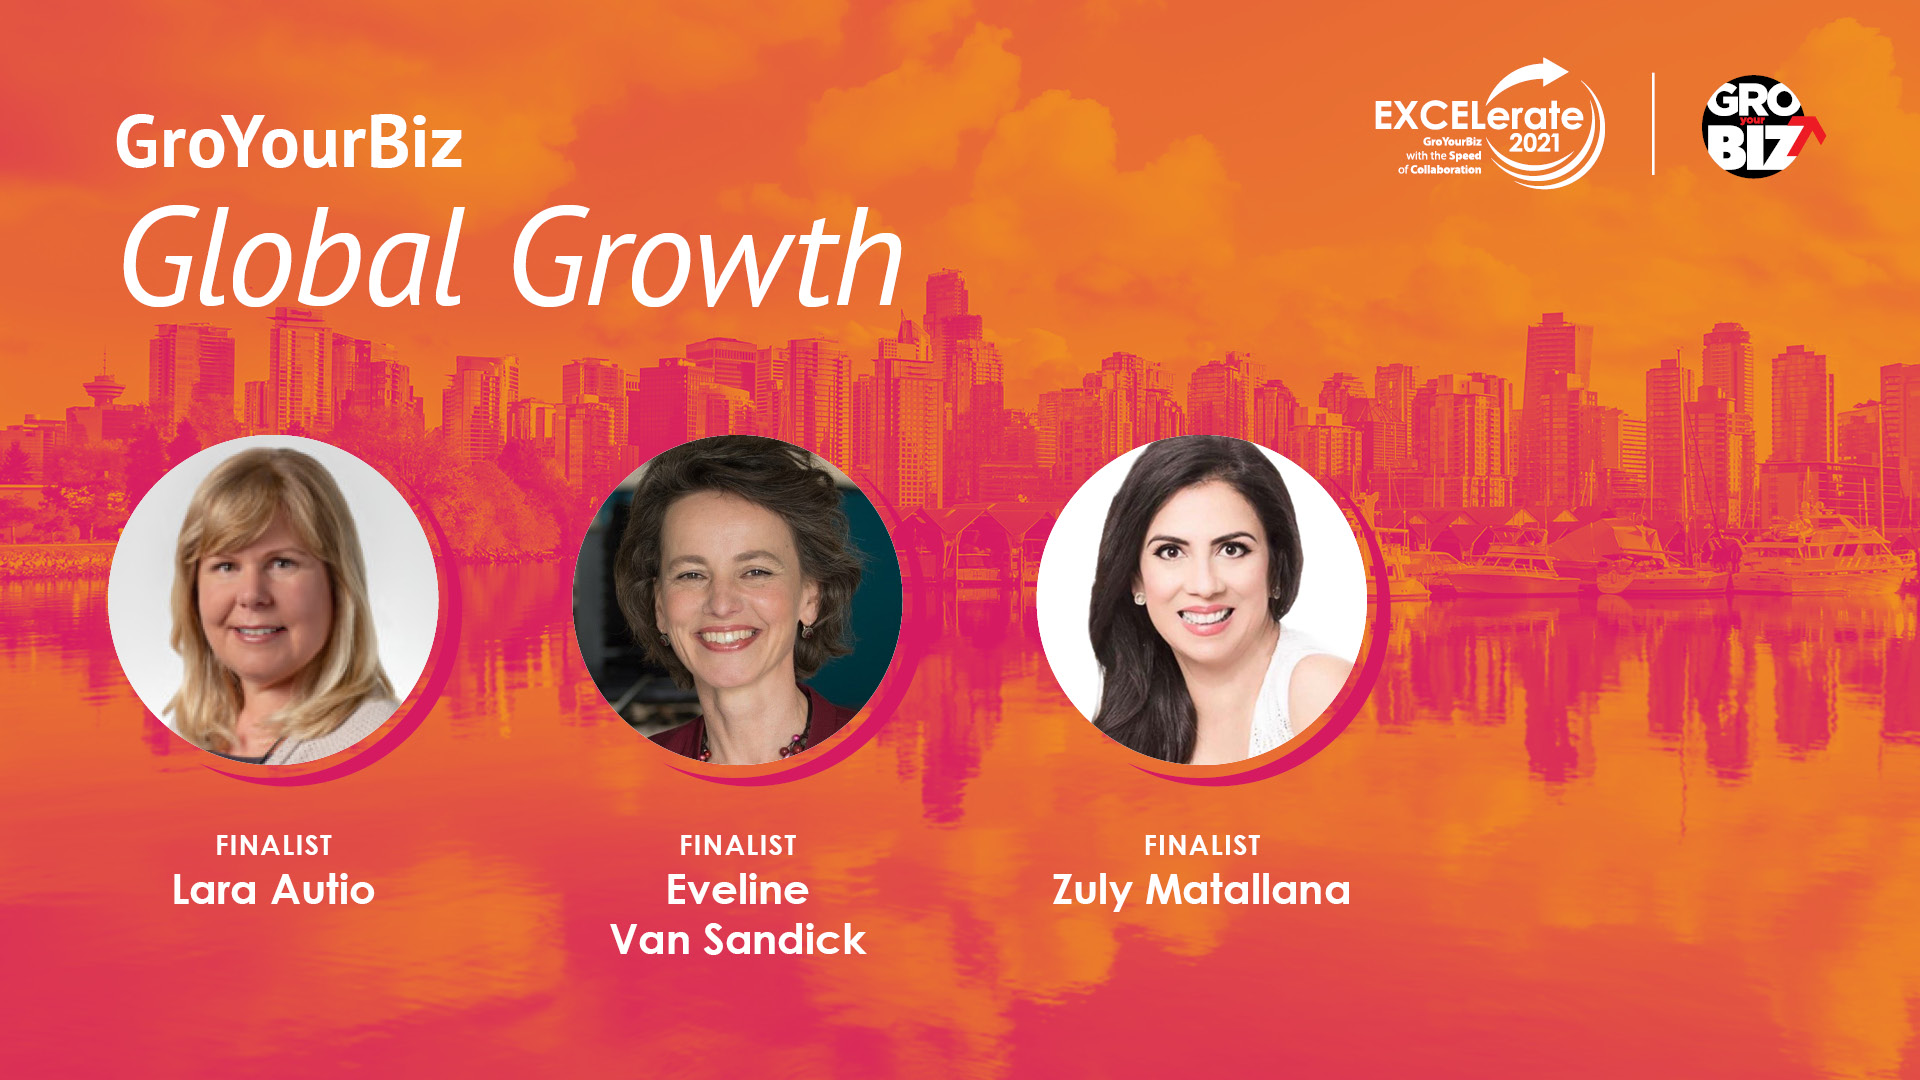 GroYourBiz Global Growth Award Finalists